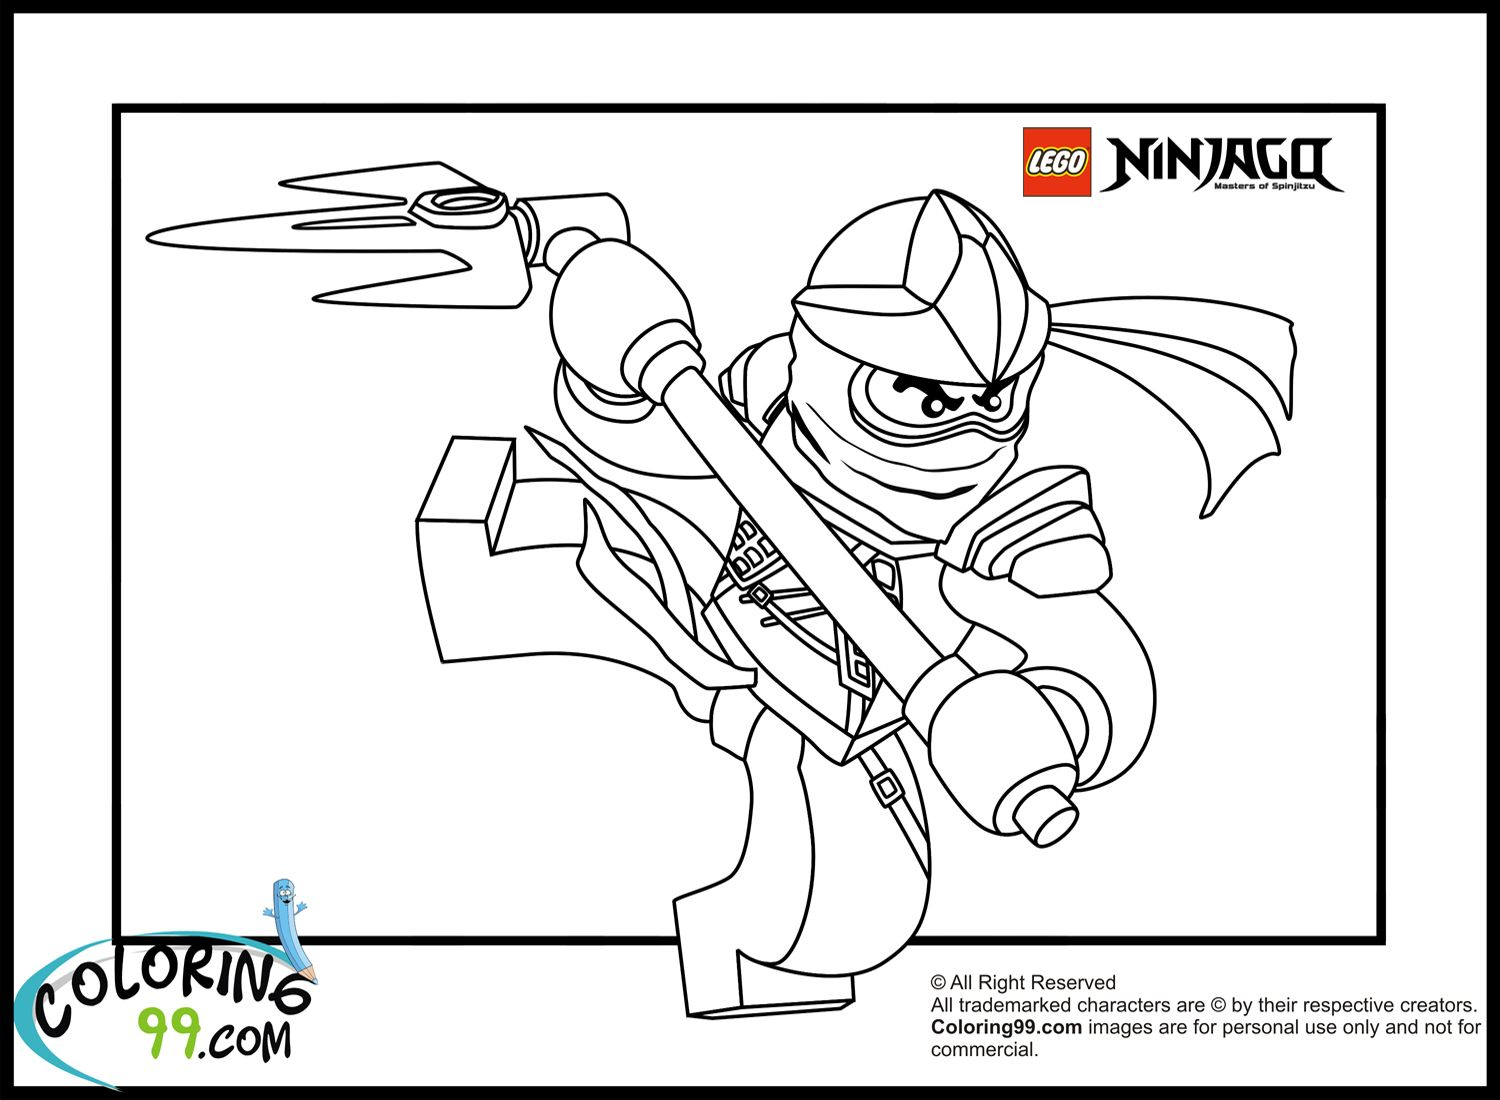 LEGO Ninjago Cole Coloring Pages | Coloring99.com | Lego party ...